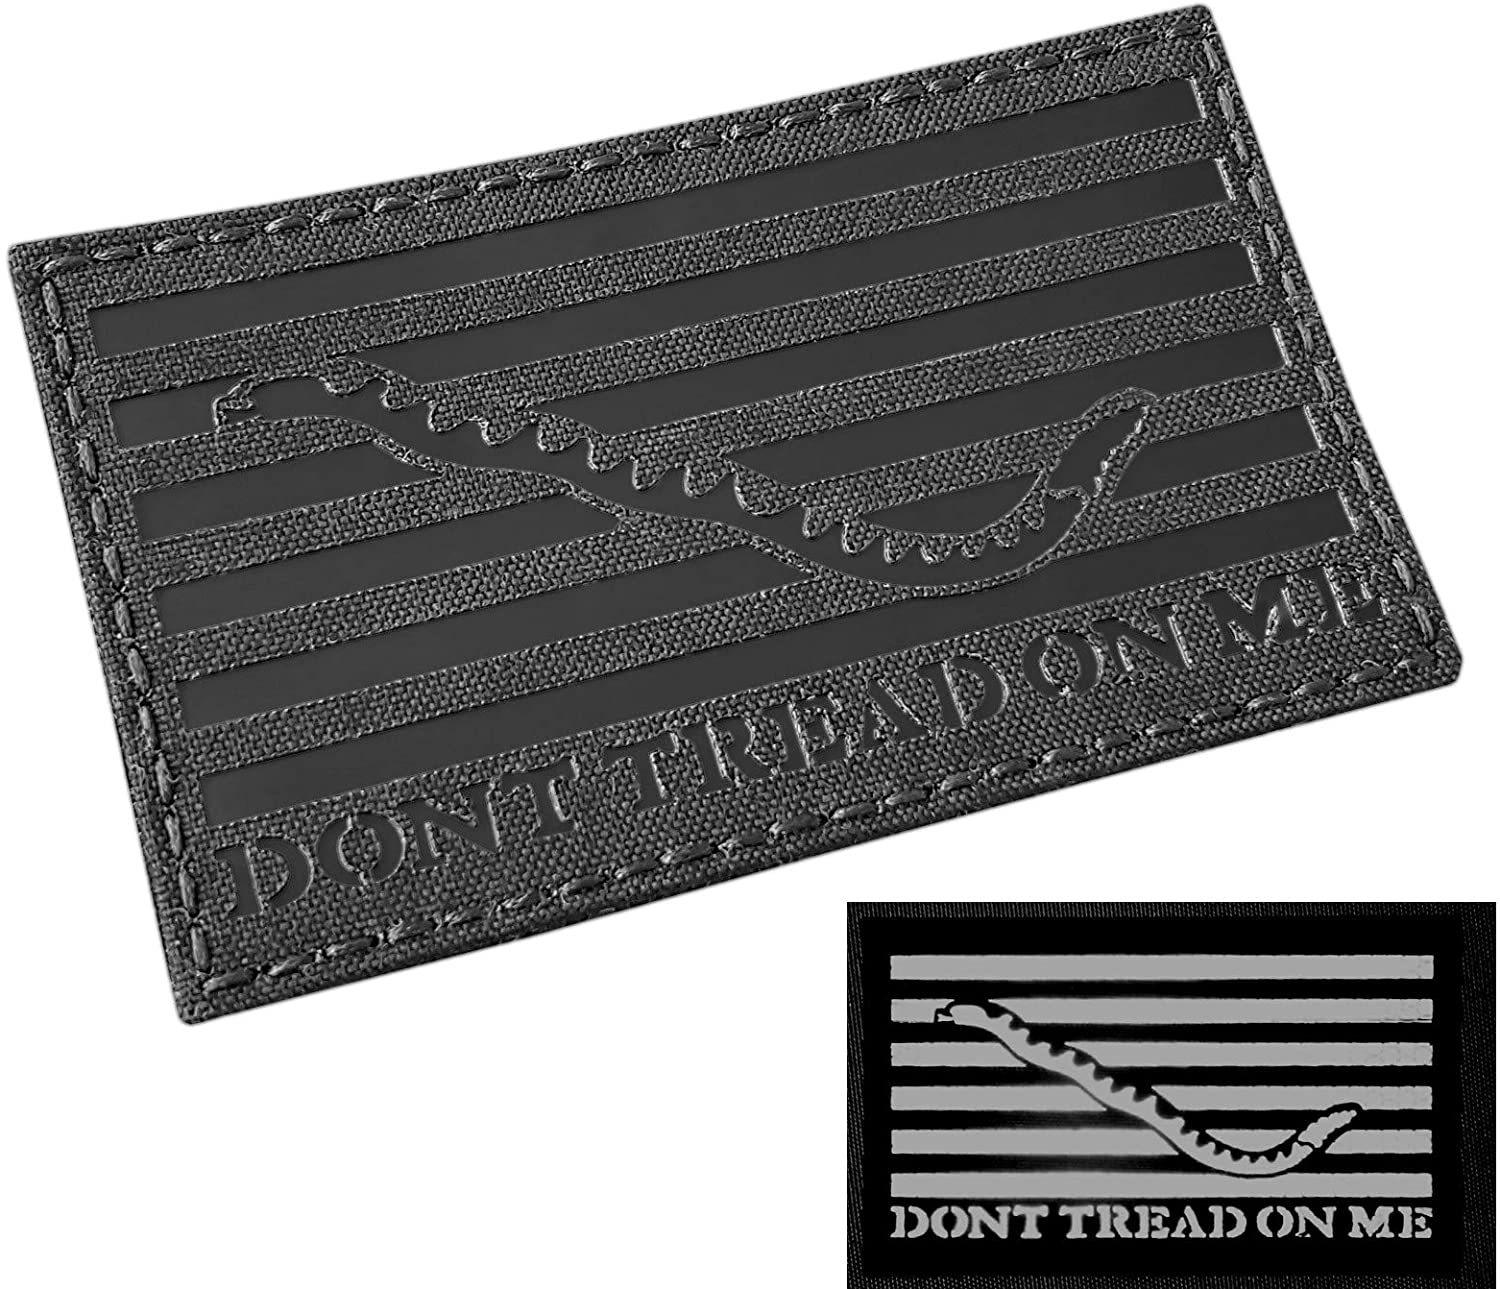 Large IR 3x5 Blackout US First Navy Jack Dont Tread On Me DTOM Flag Infrared Morale Touch Fastener Patch